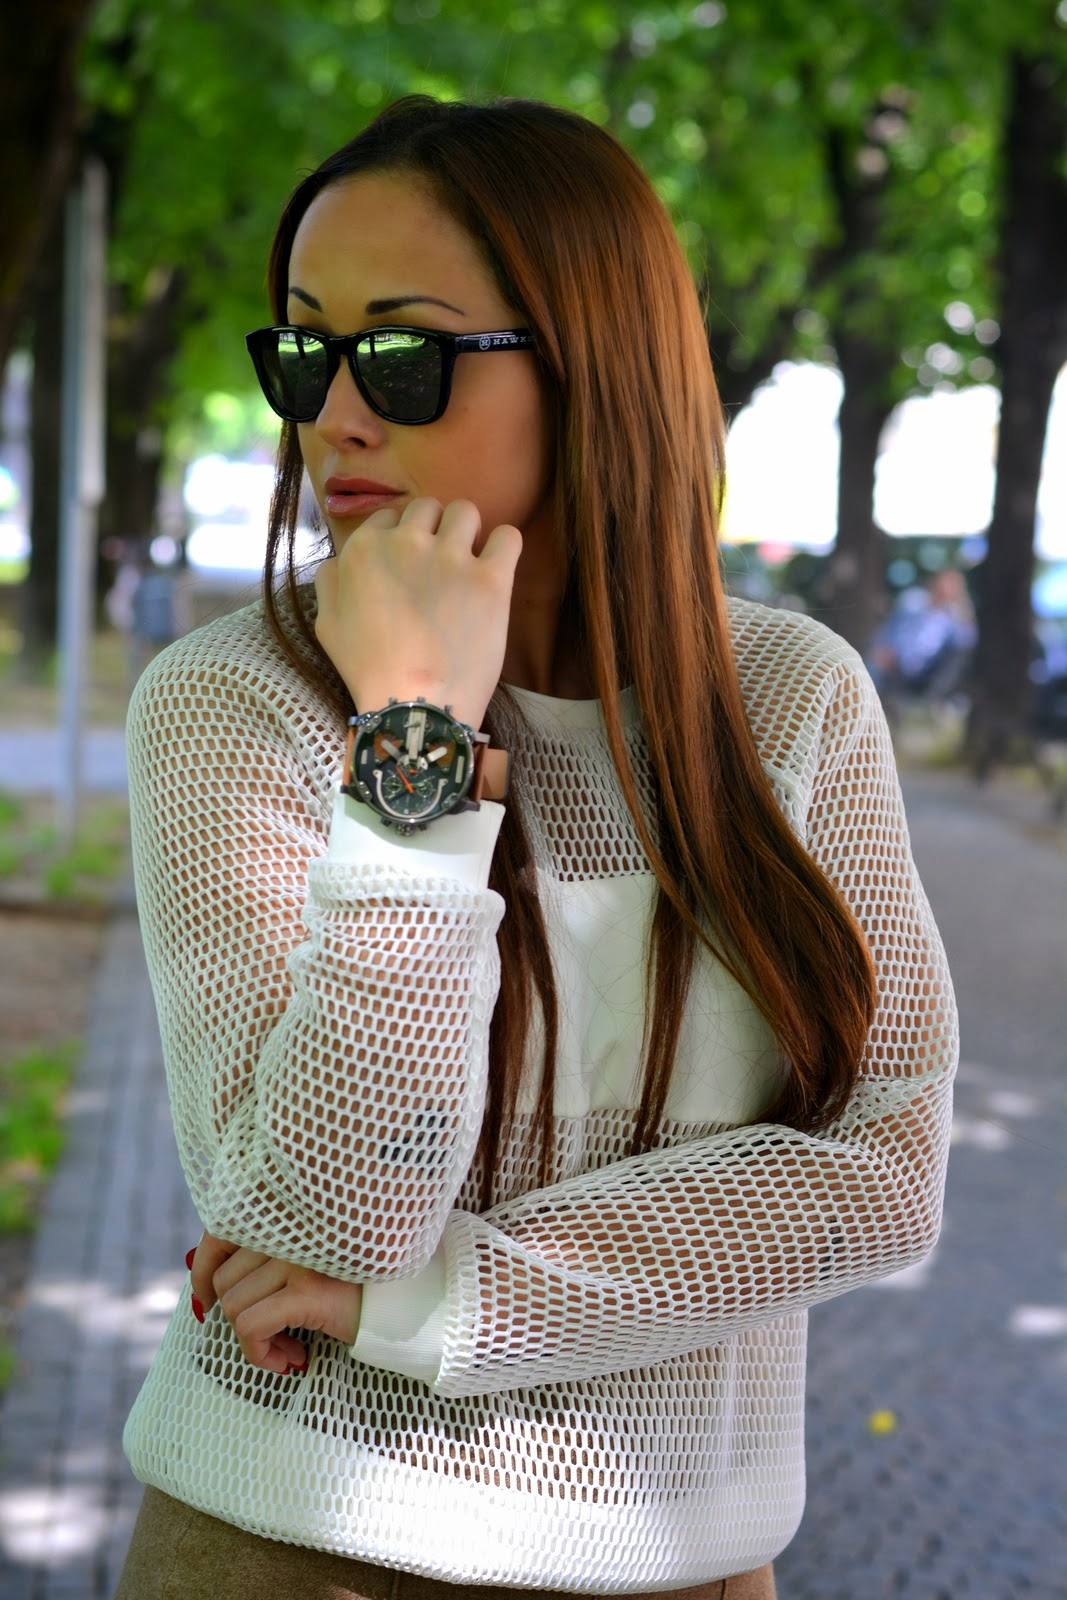 Kill Blonde, made in Italy, hawkers co, diesel, diesel watch , Jessica Neumann, Best Fashion Blogger,